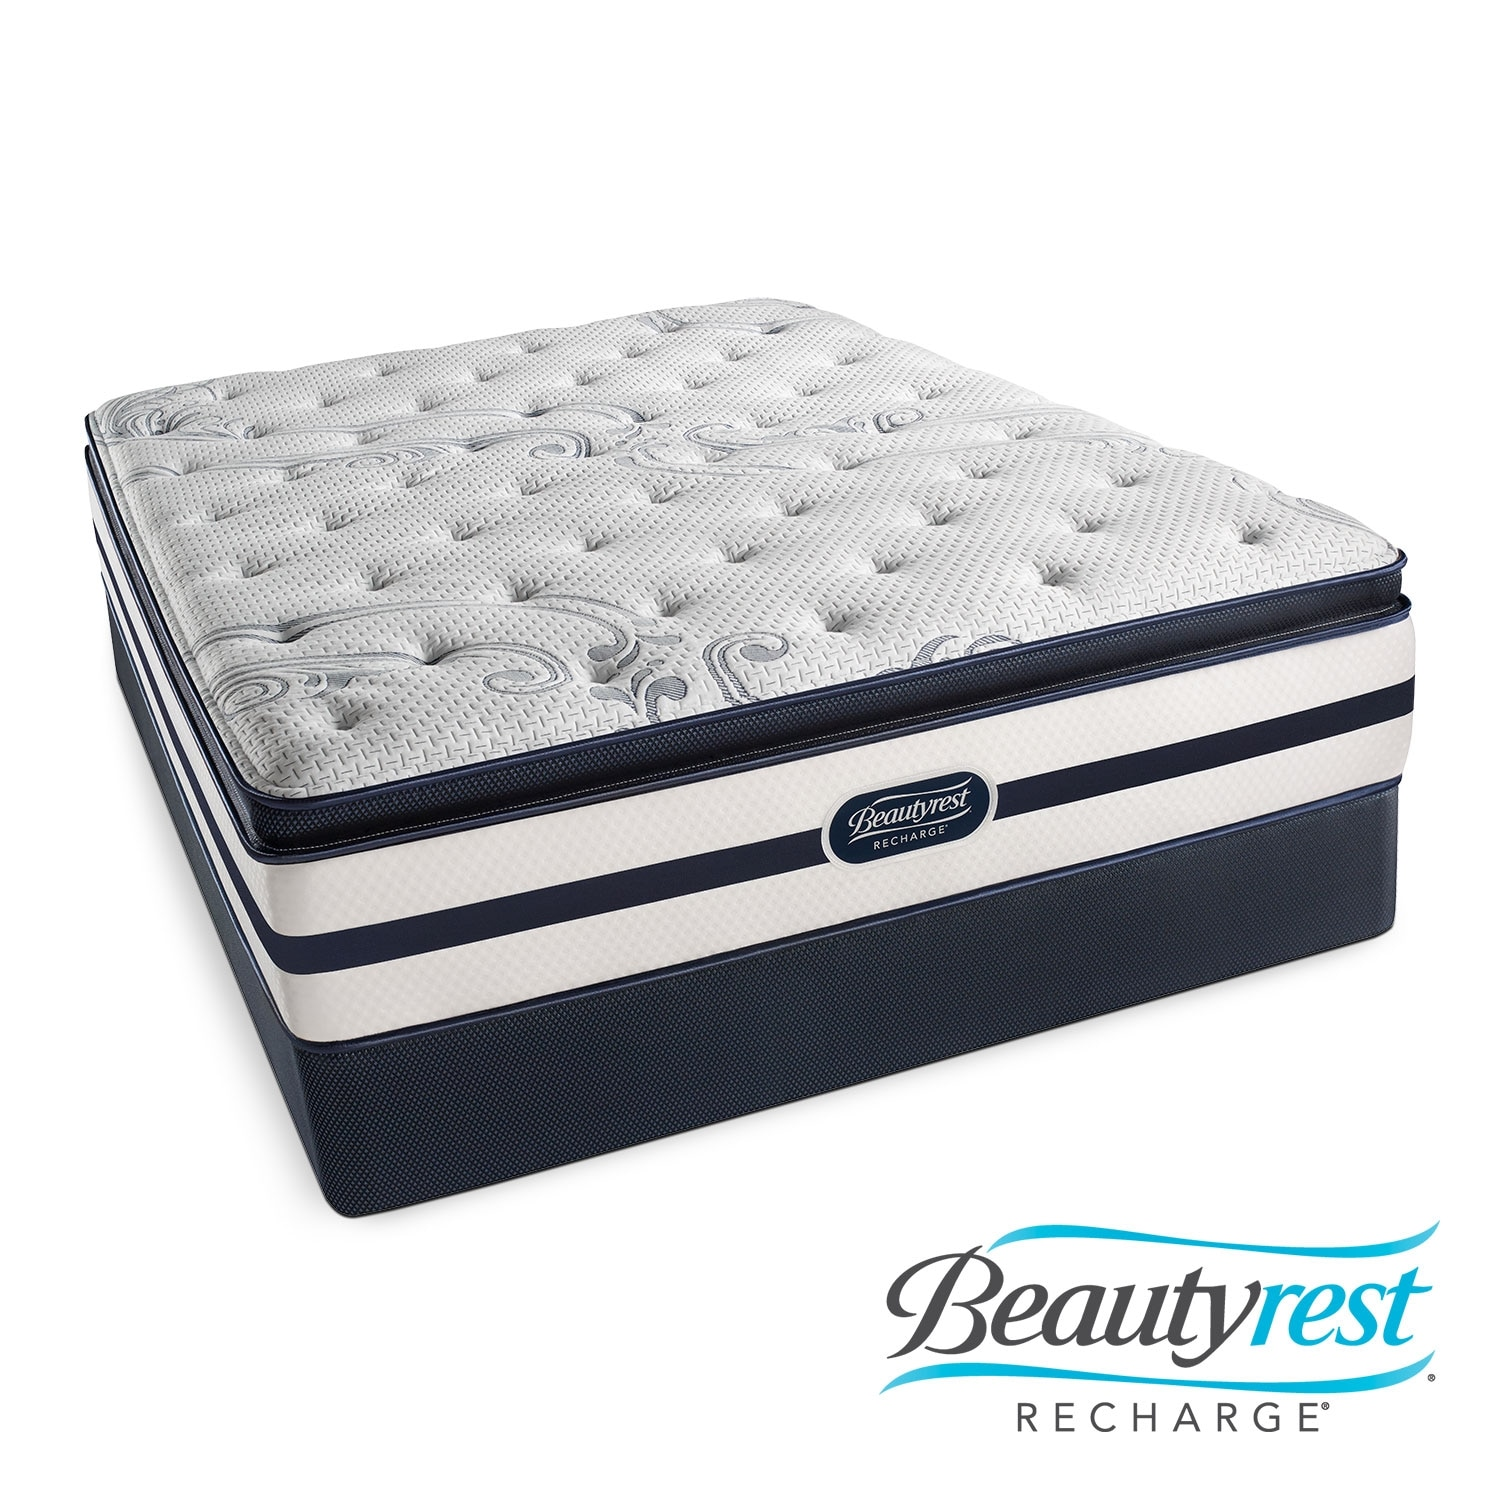 Mattresses and Bedding - Alisa Plush Full Mattress and Foundation Set